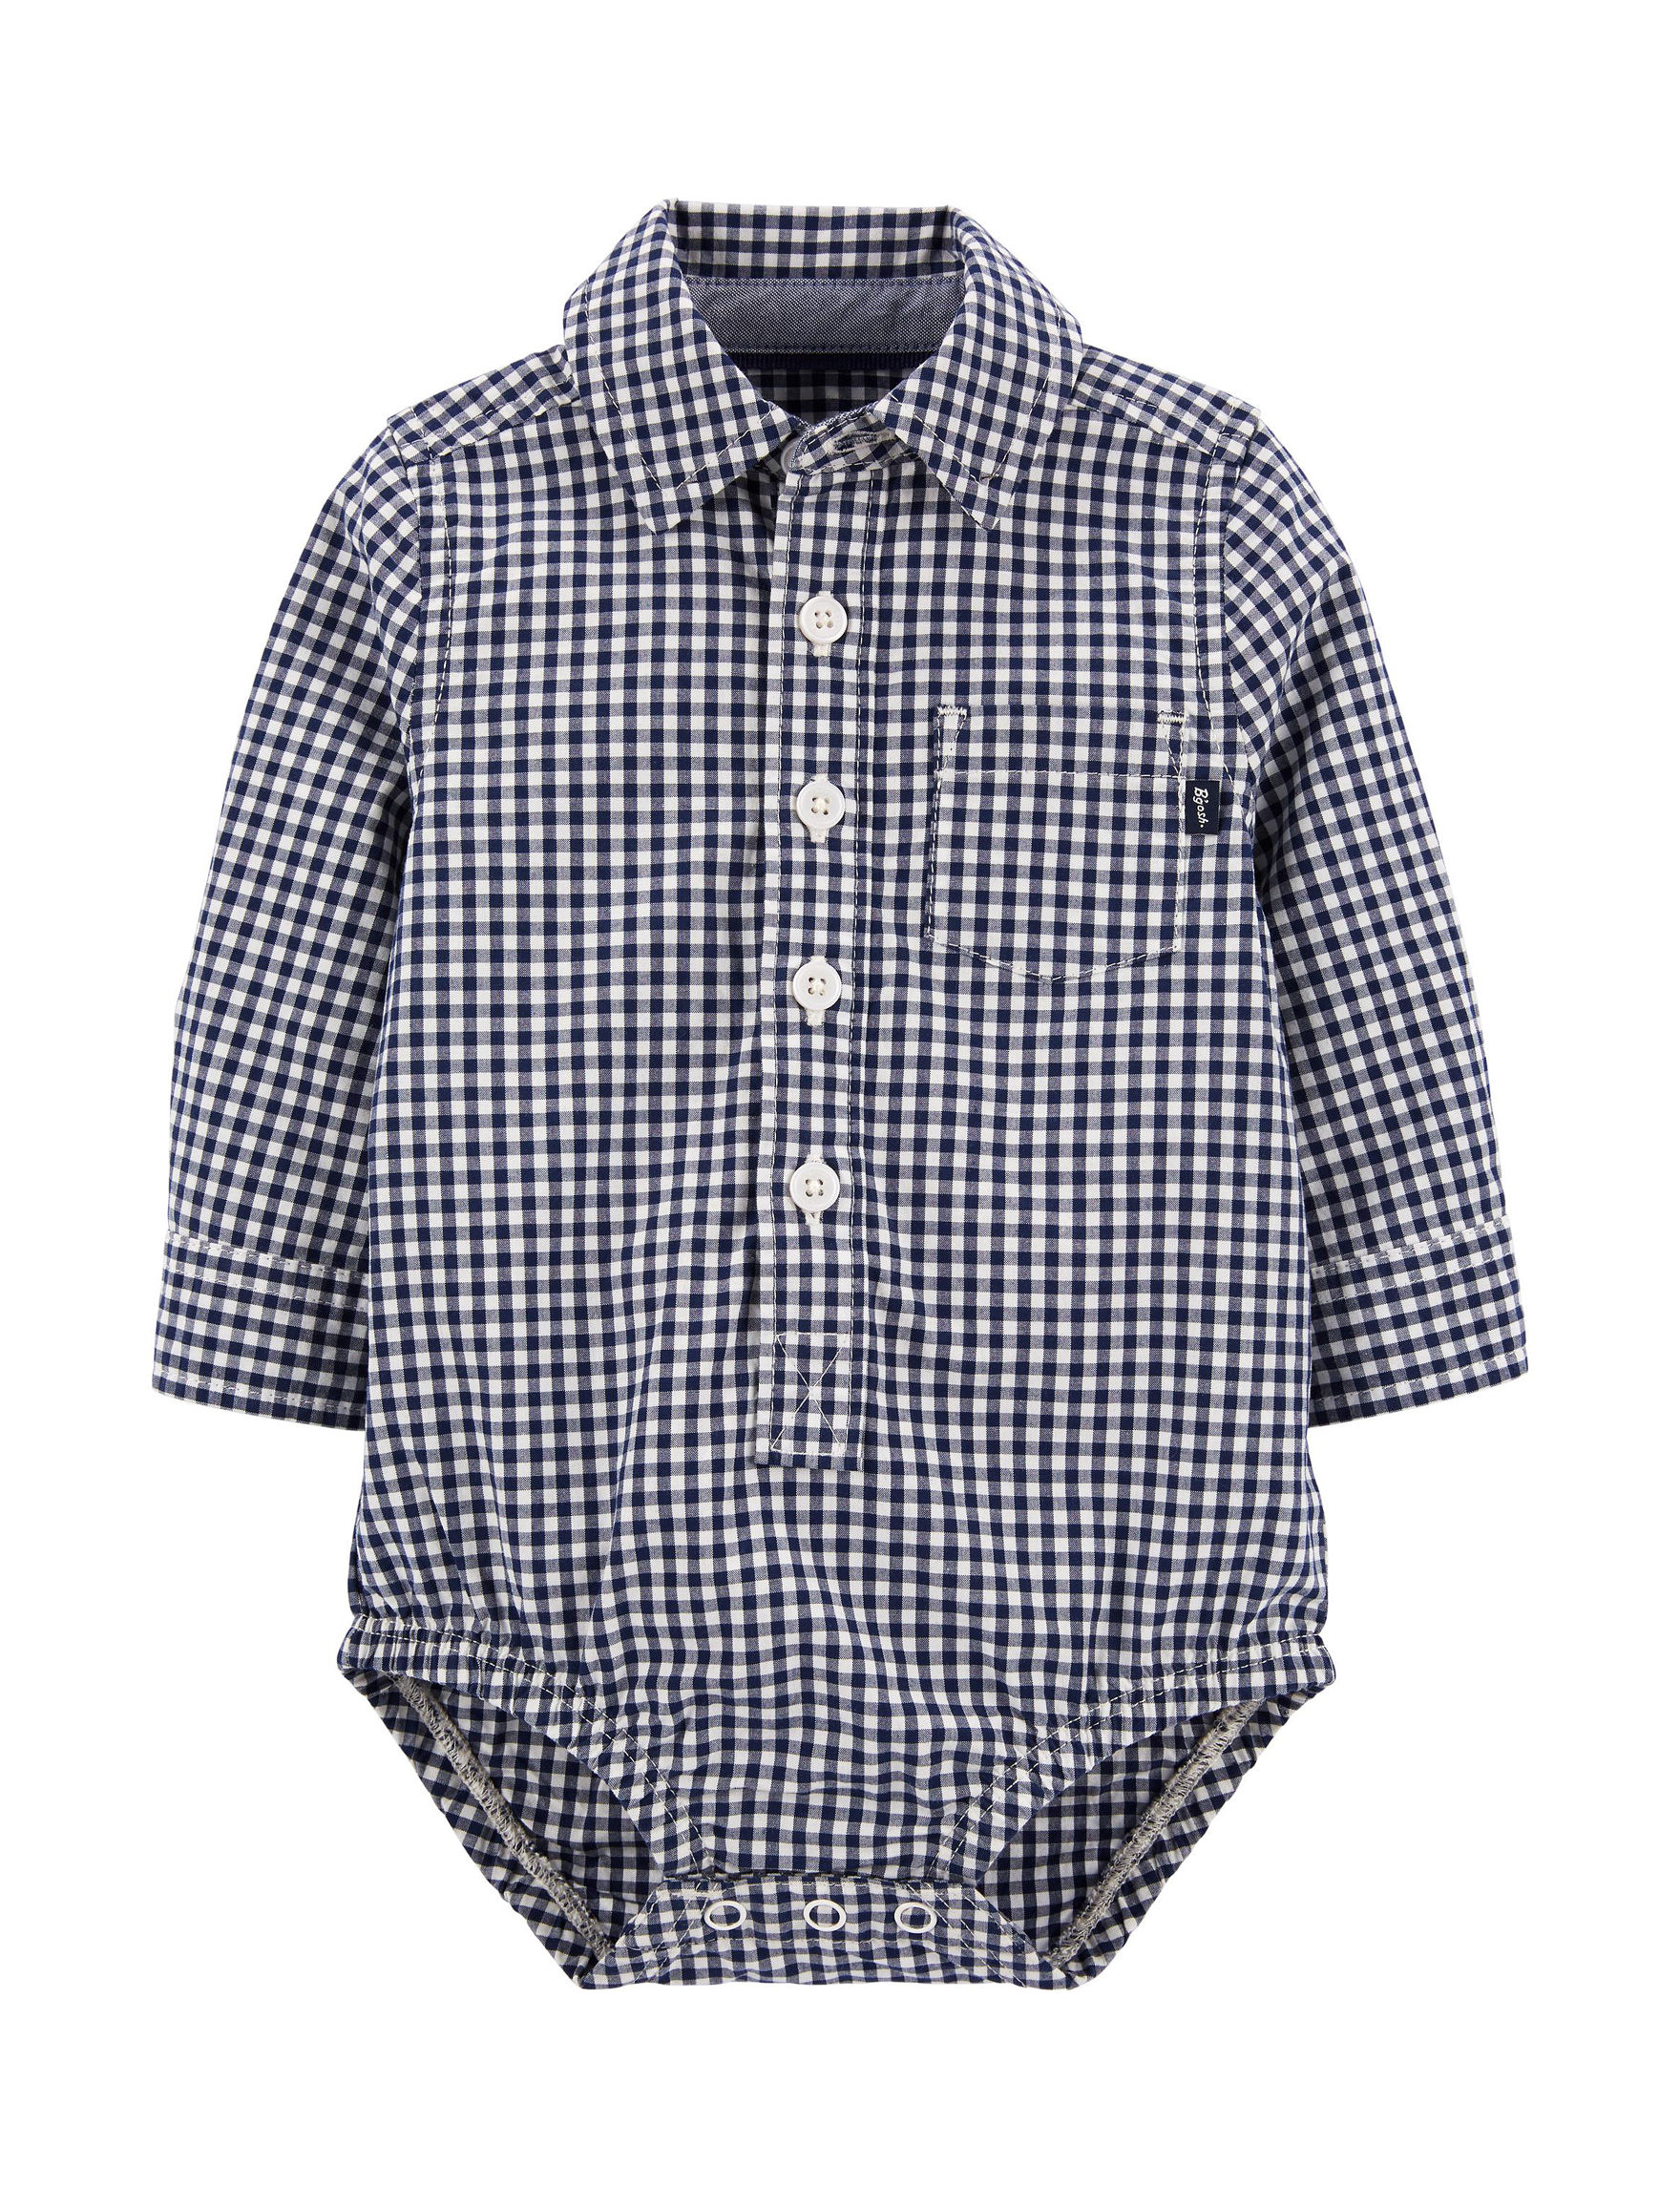 Oshkosh B'Gosh Navy / Gingham